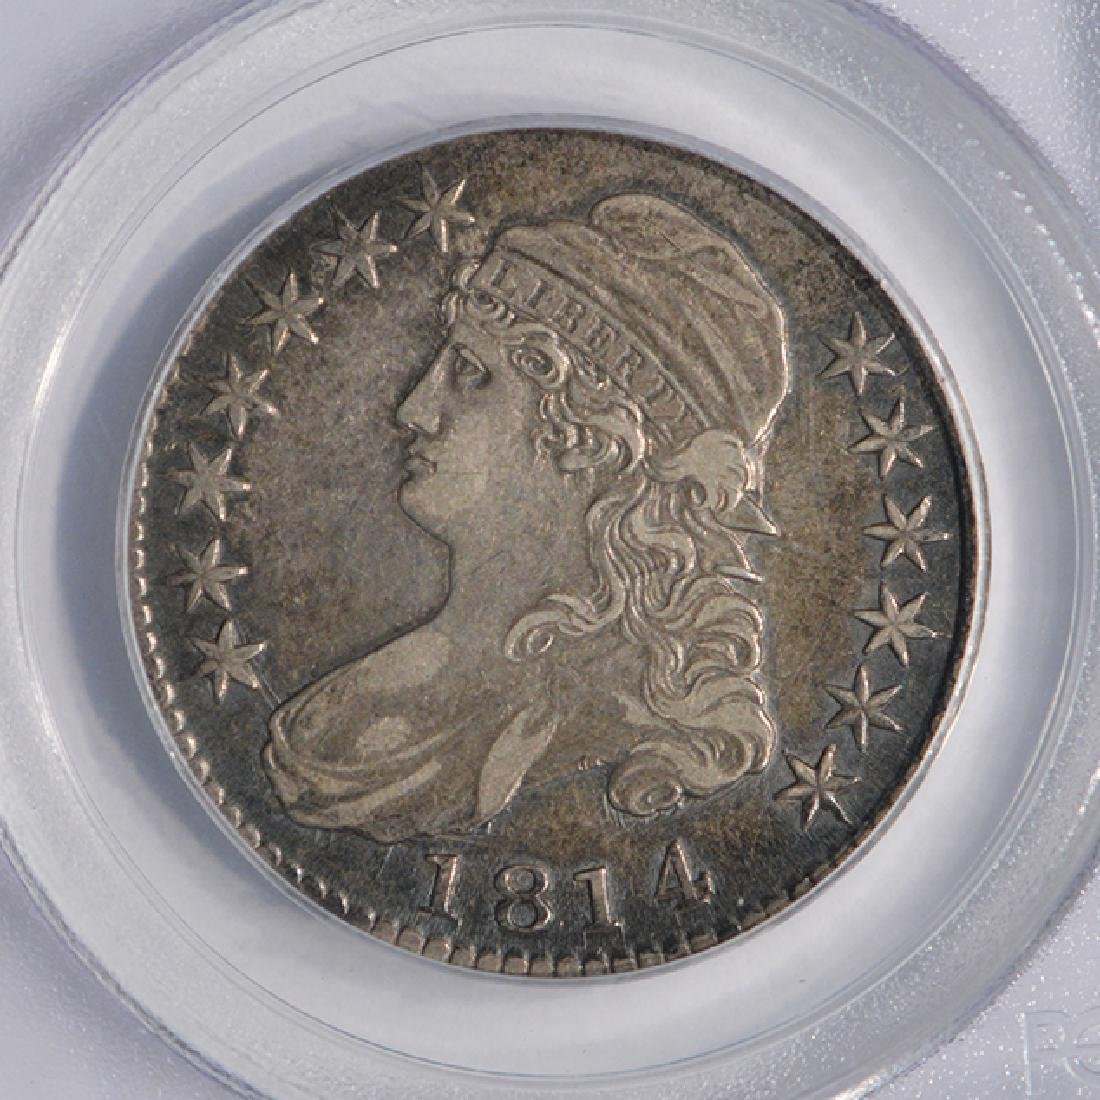 1814 Capped Bust Half Dollar Coin PCGS XF40 - 3